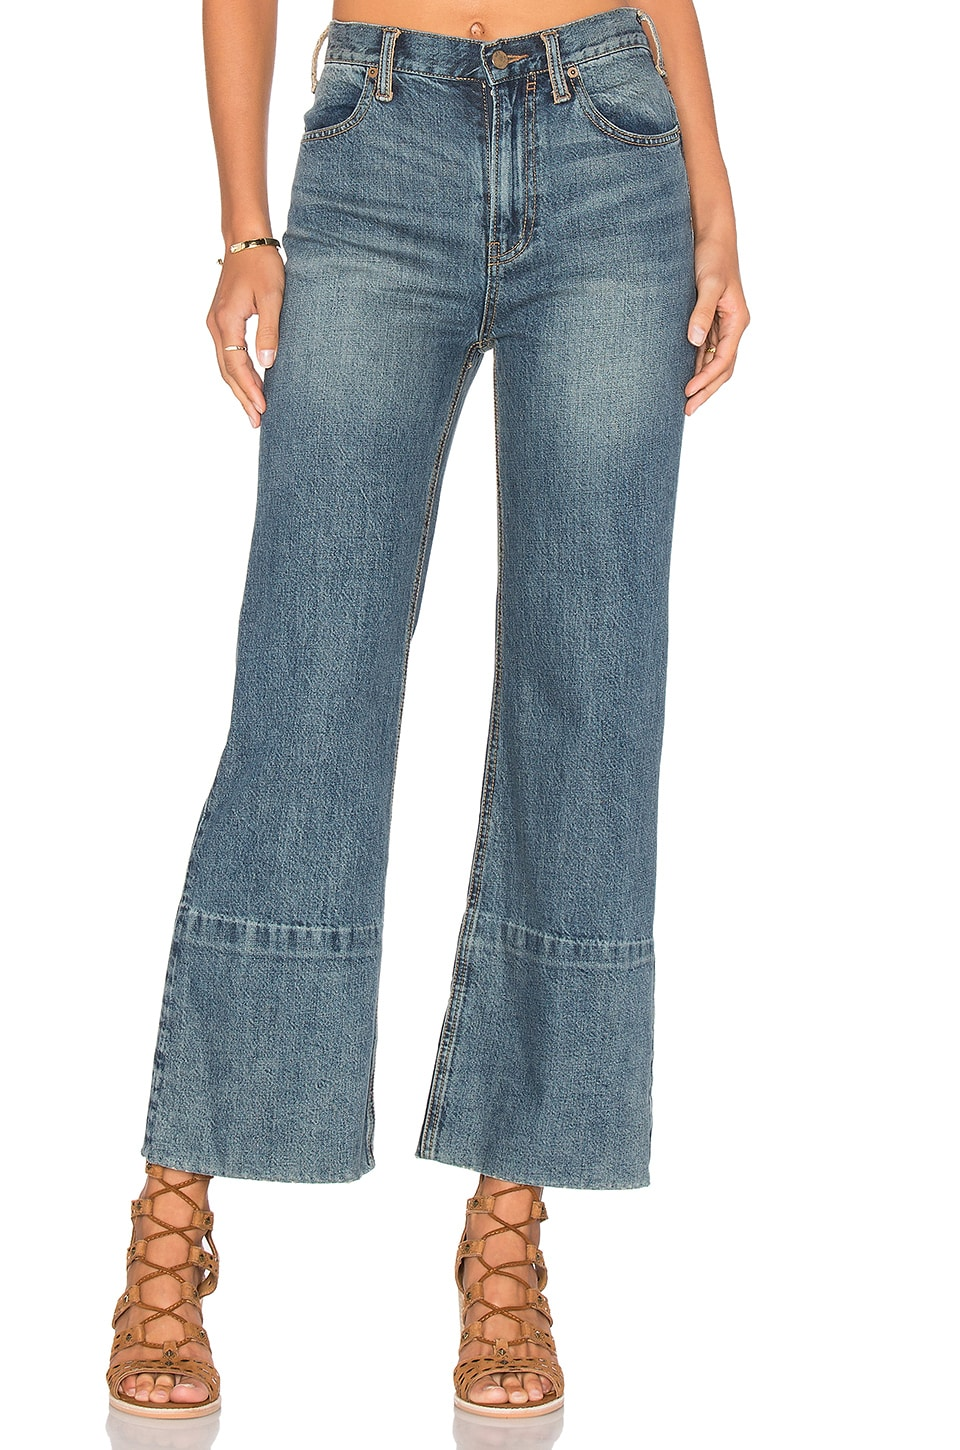 Free People Hopkin Hi Rise Wide leg Jeans in Denim Blue